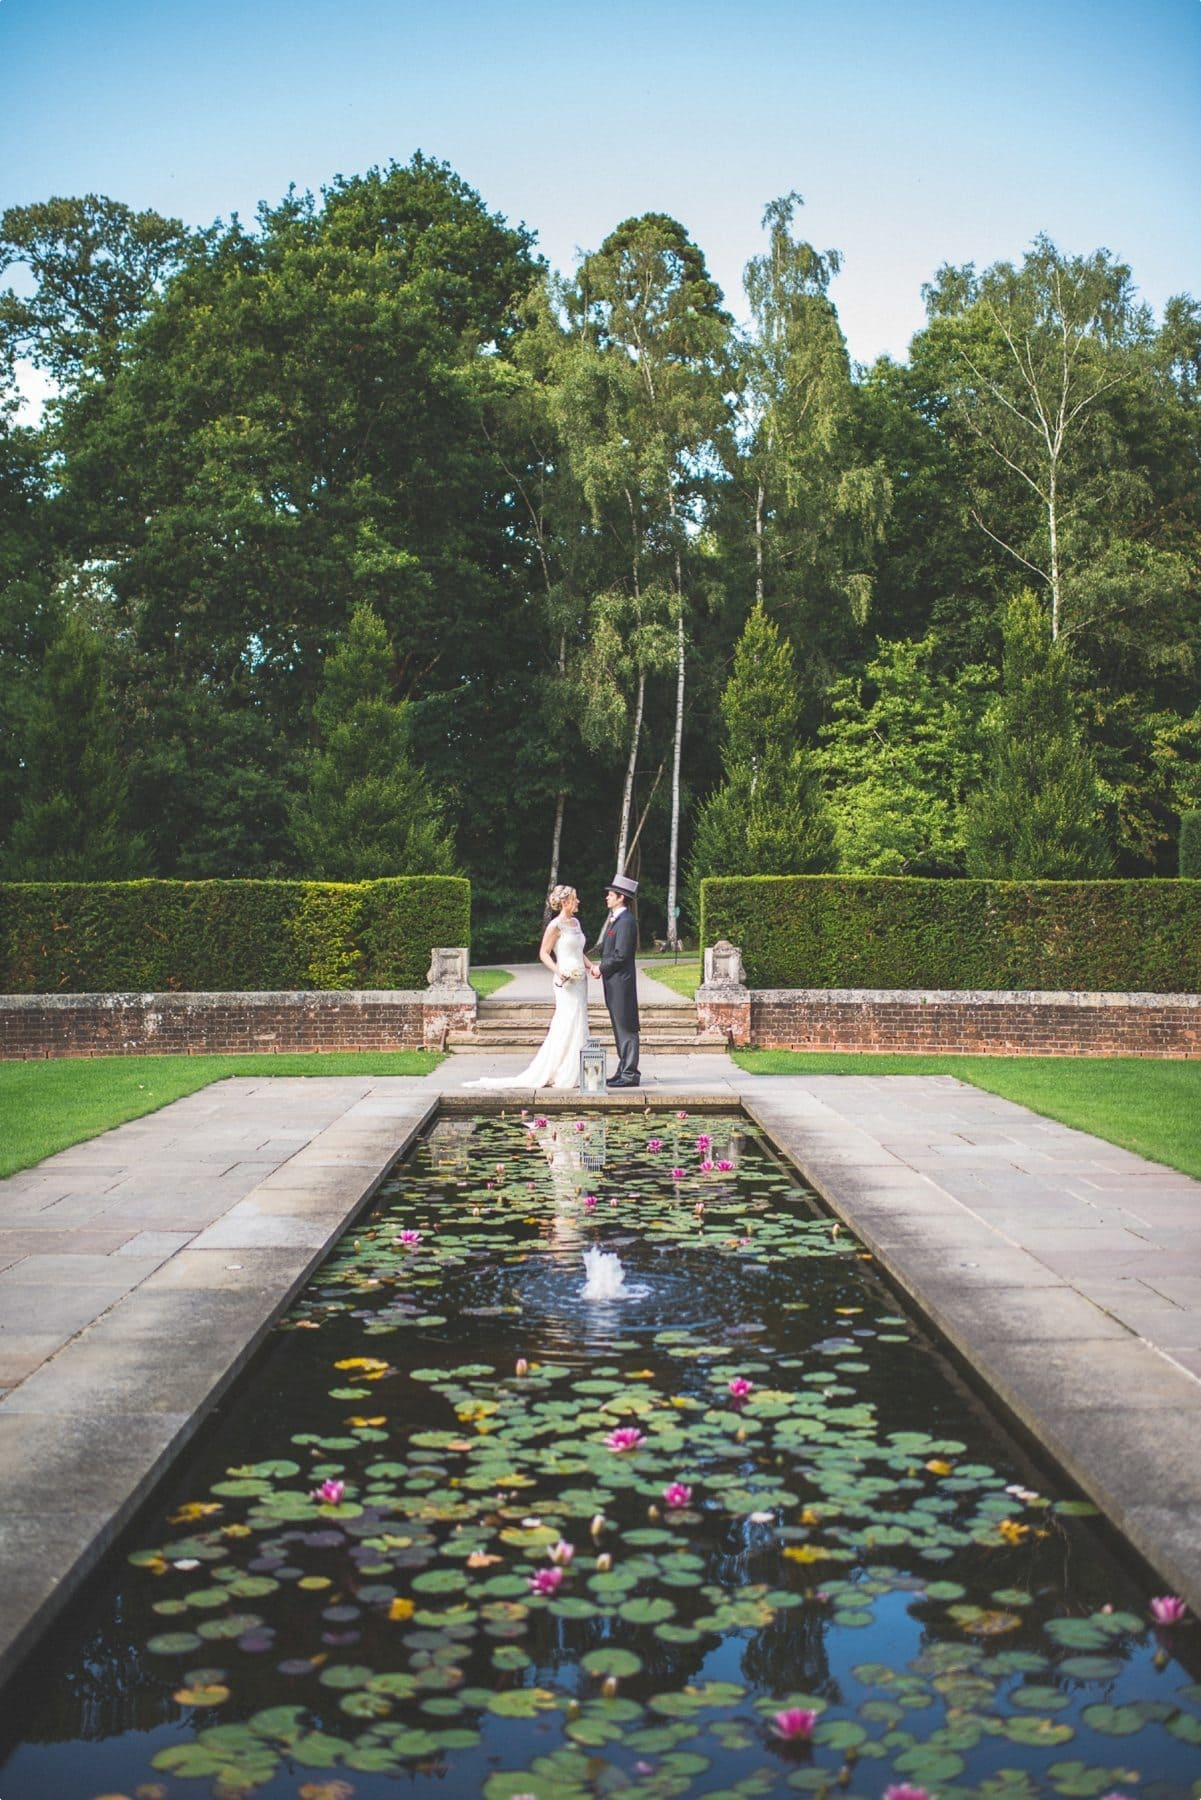 Bride and groom summer wedding portrait at coworth park lily pond awesome couple shoot location